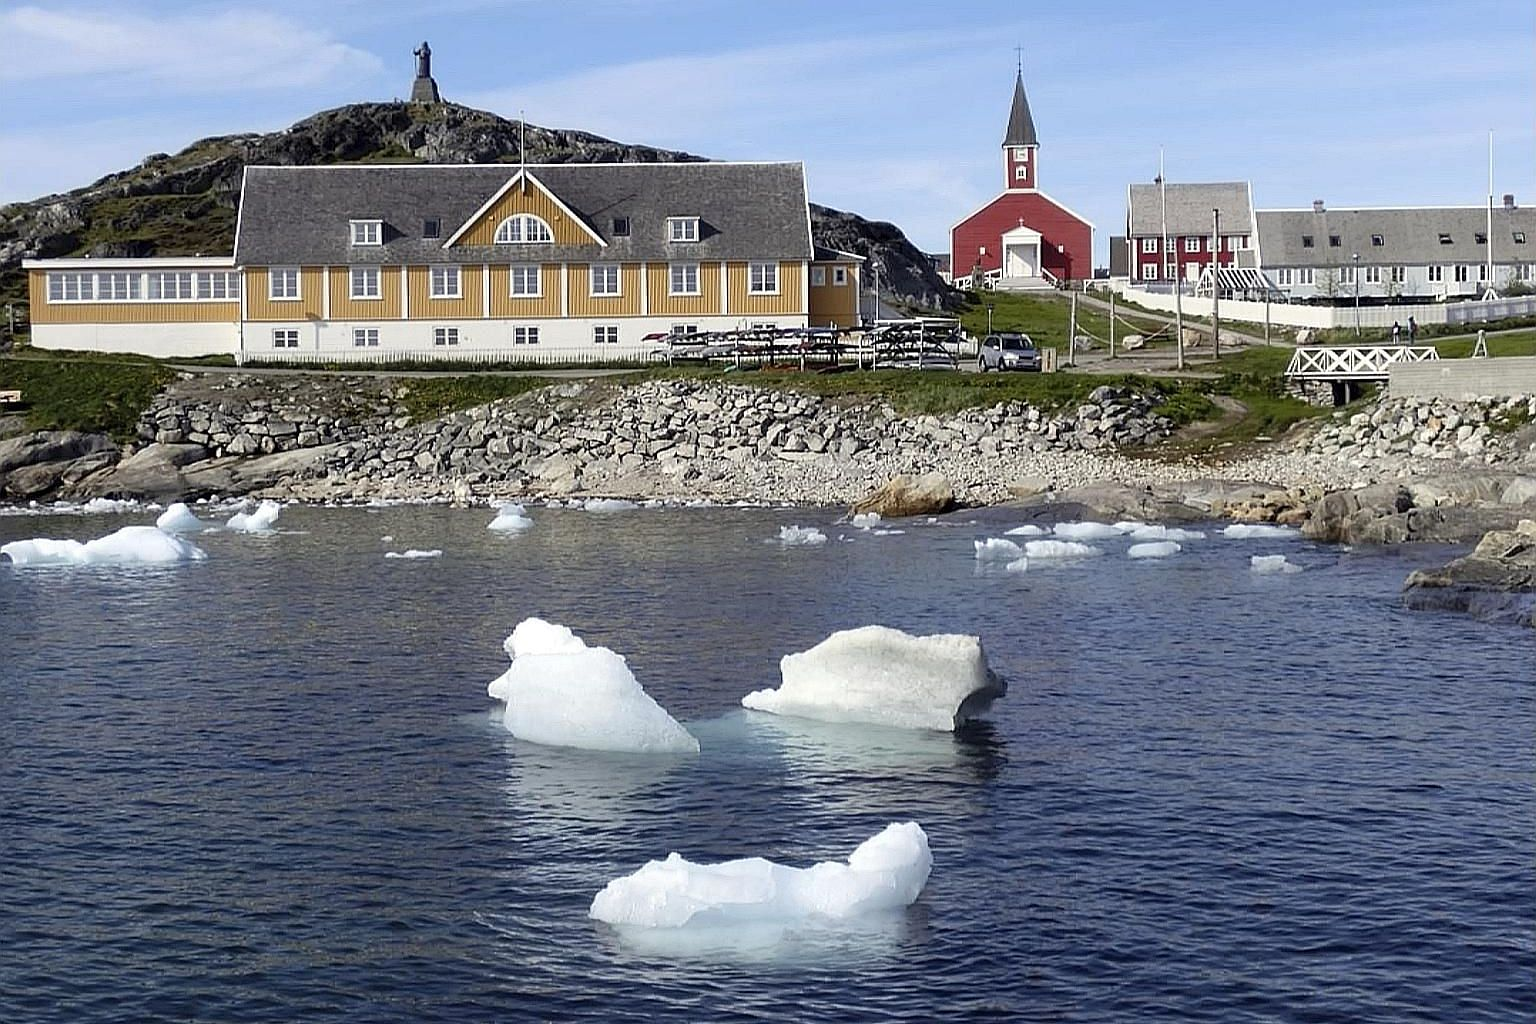 Pieces of ice floating in the water off the shore in Nuuk, capital of Greenland. Record heat this year triggered extreme melting in the country. Scientists estimate that by the end of the summer, enough ice will have melted or calved off its ice shee